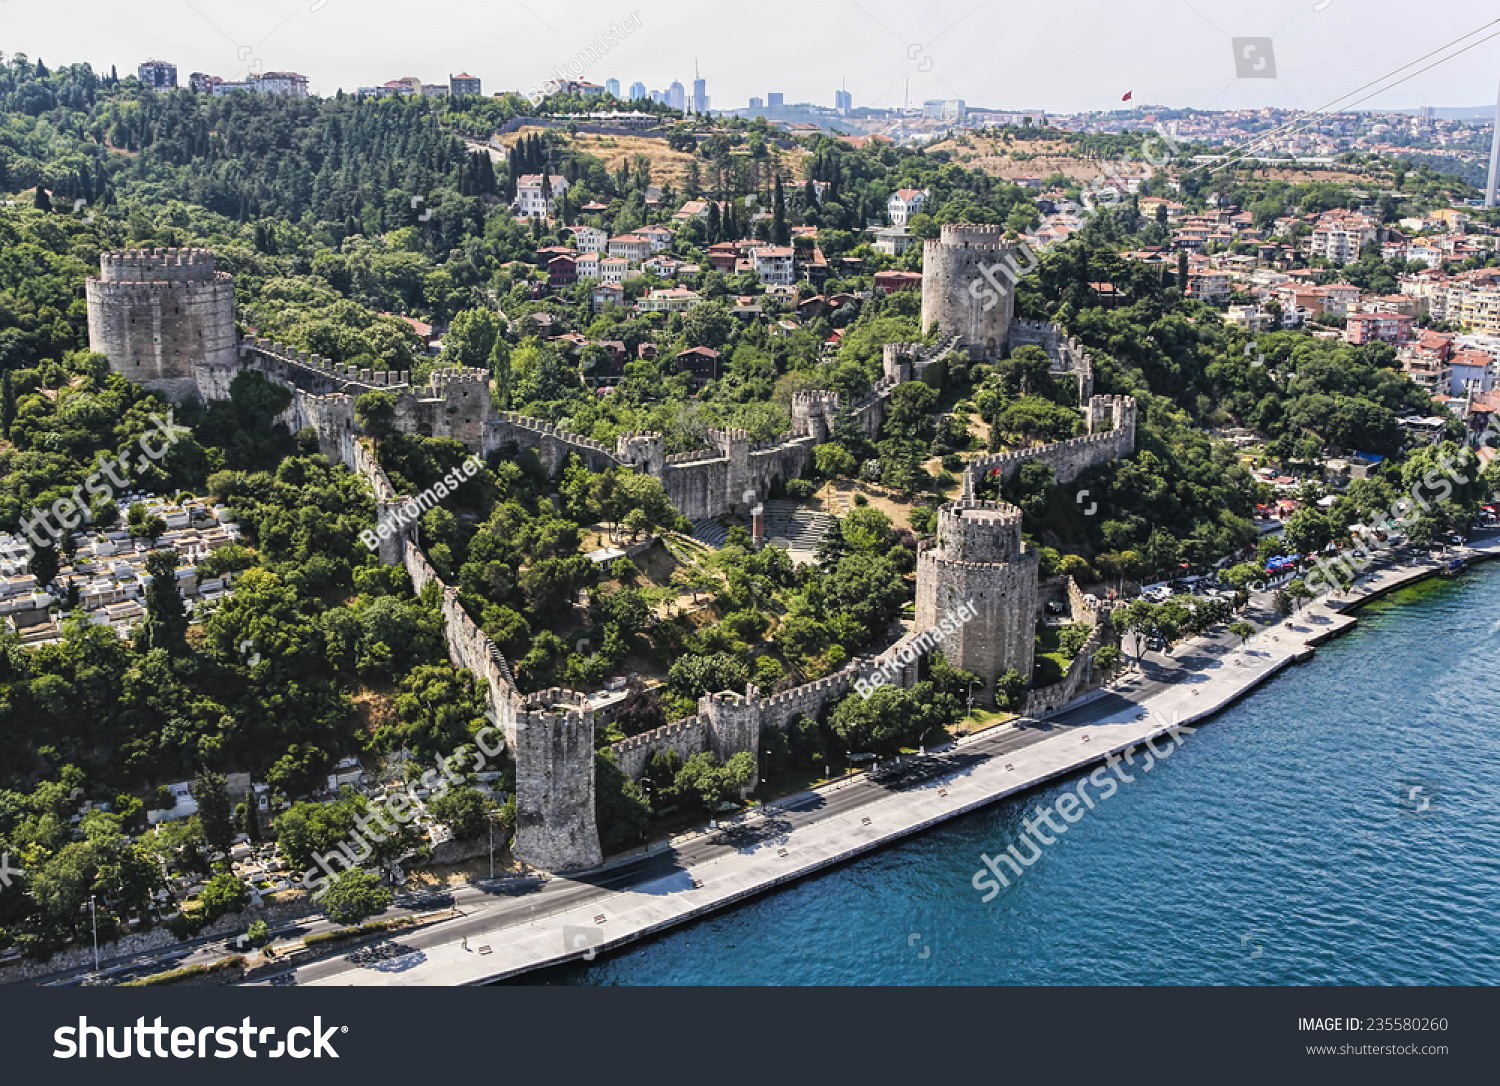 Rumeli Fortress Stock Photo 235580260 - Shutterstock